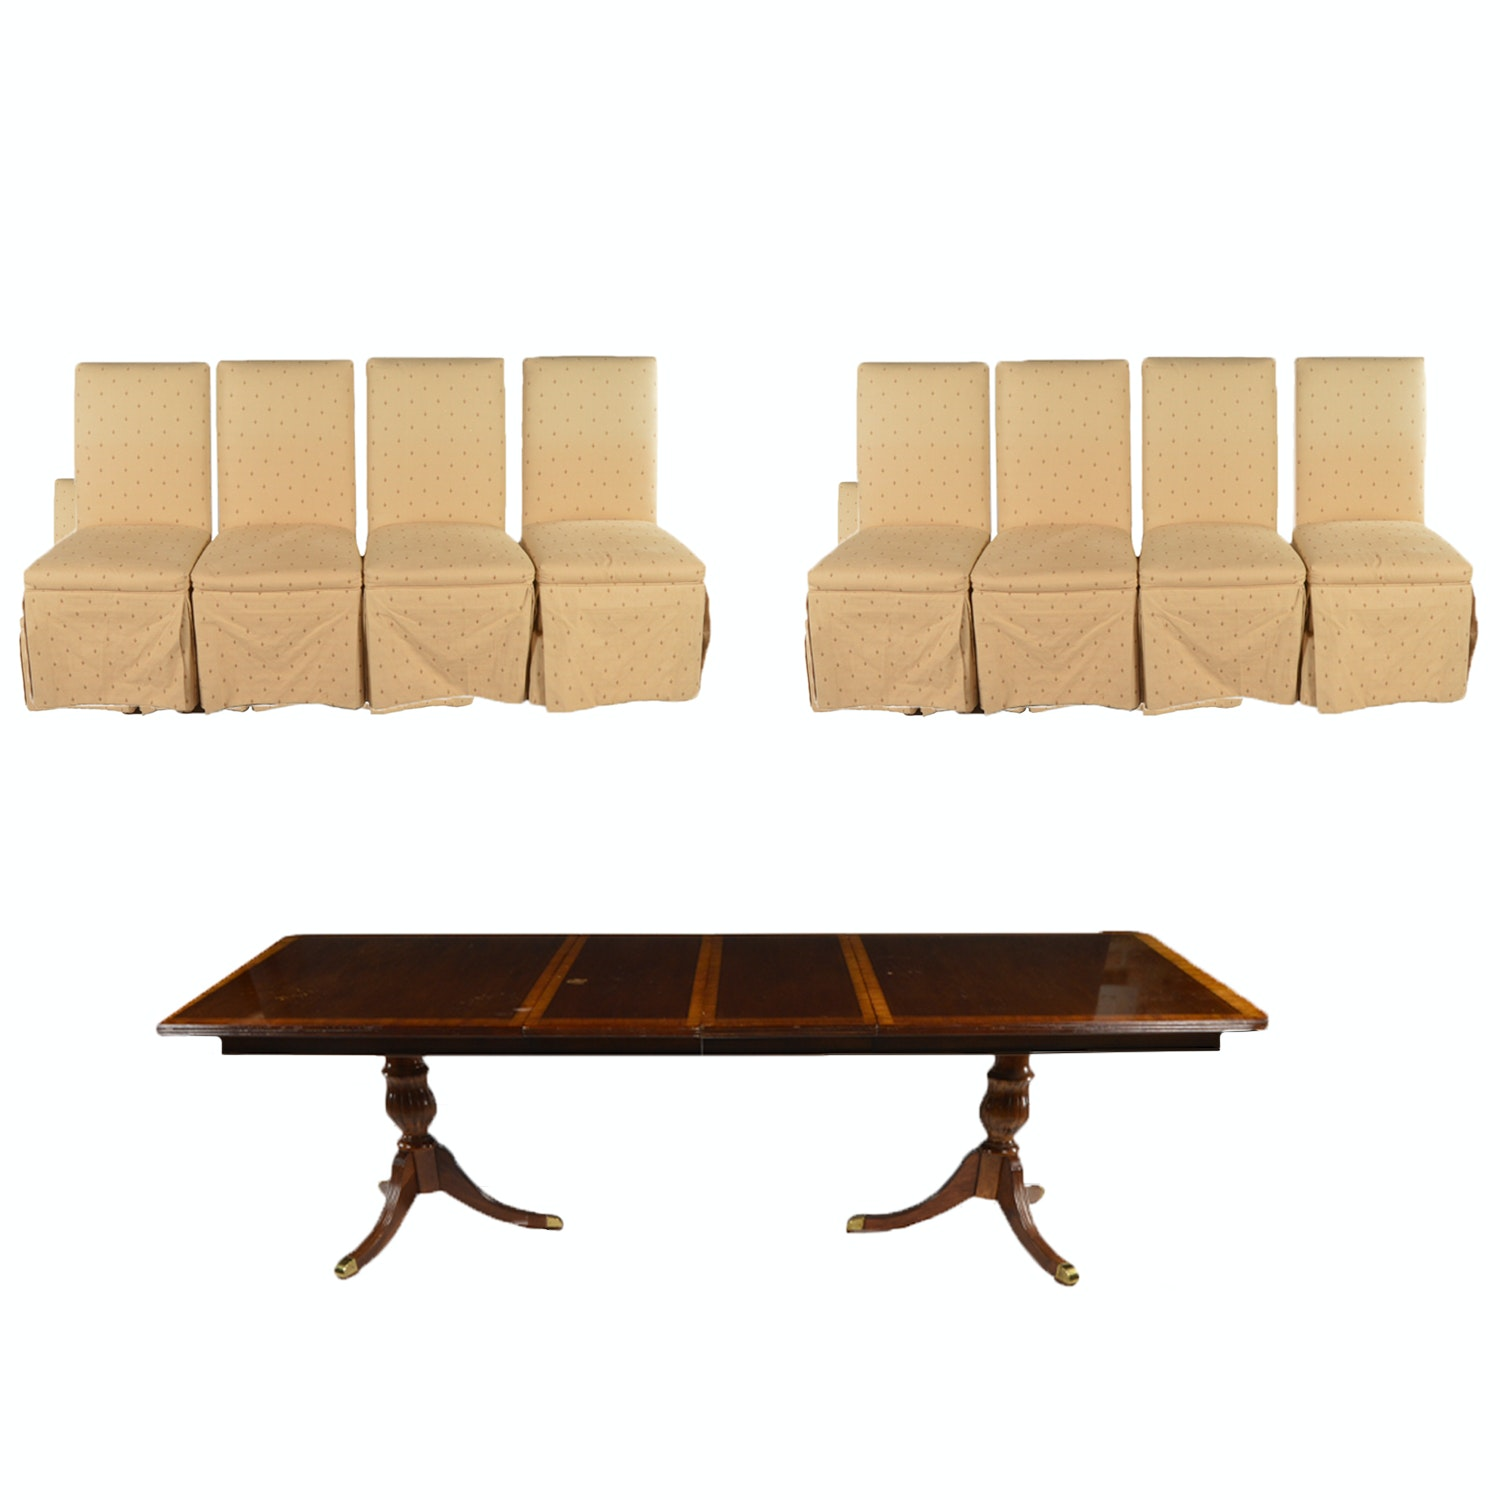 Federal Style Mahogany Dining Table with Upholstered Side Chairs, 20th Century